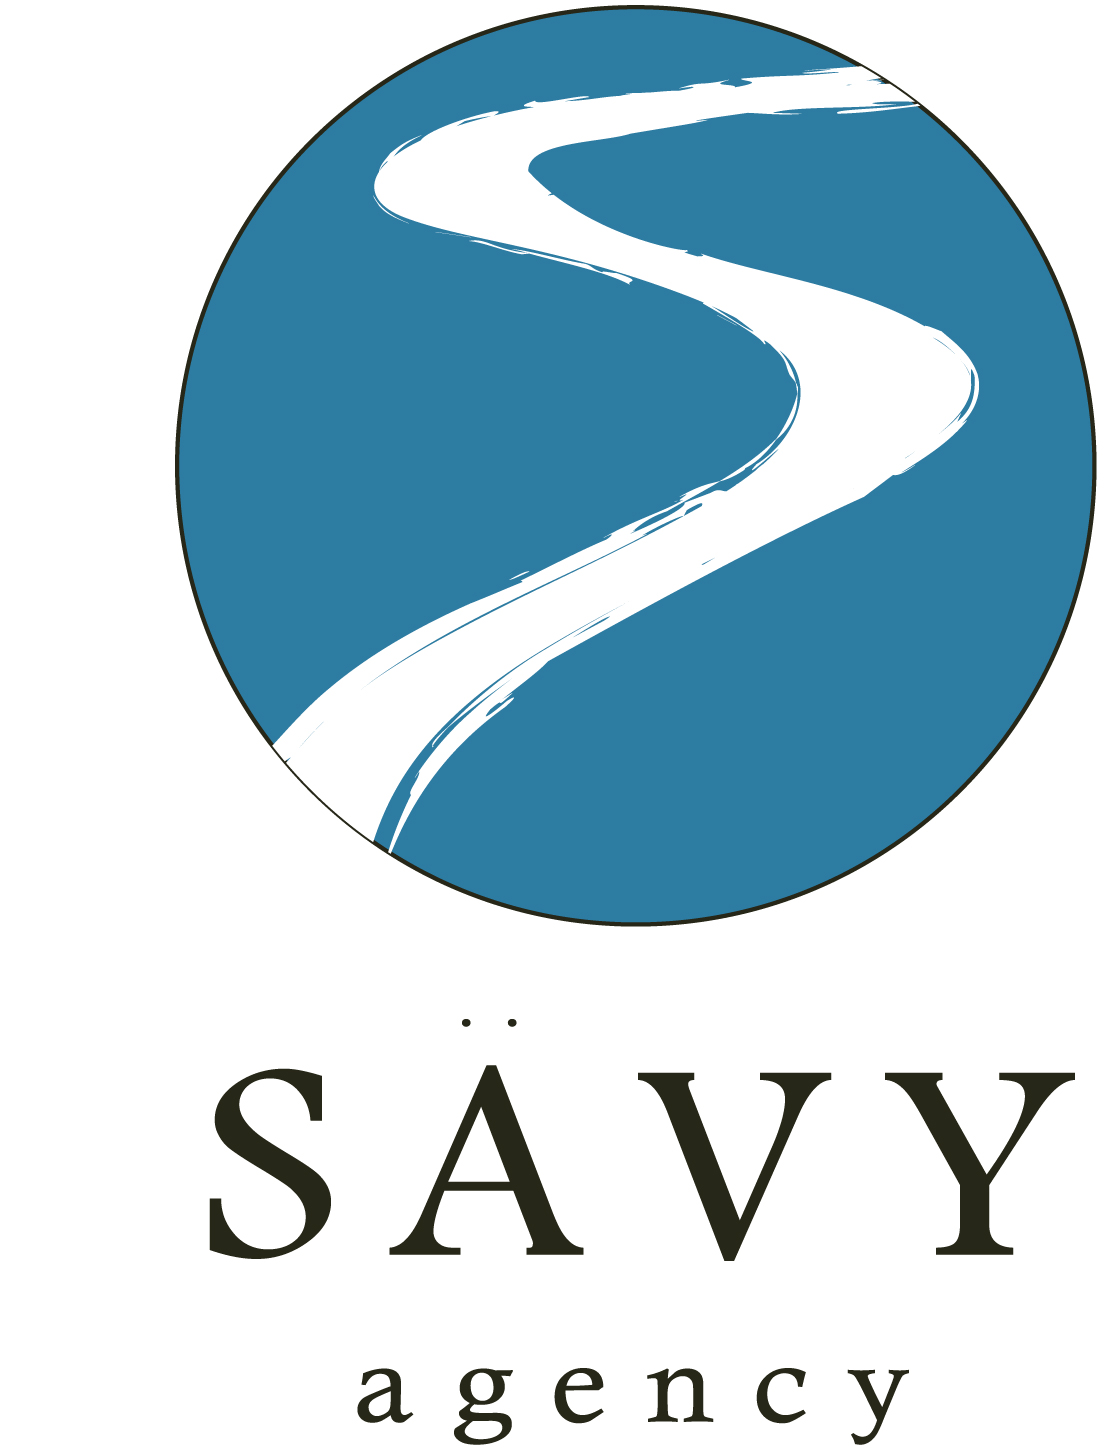 savy_agency_email